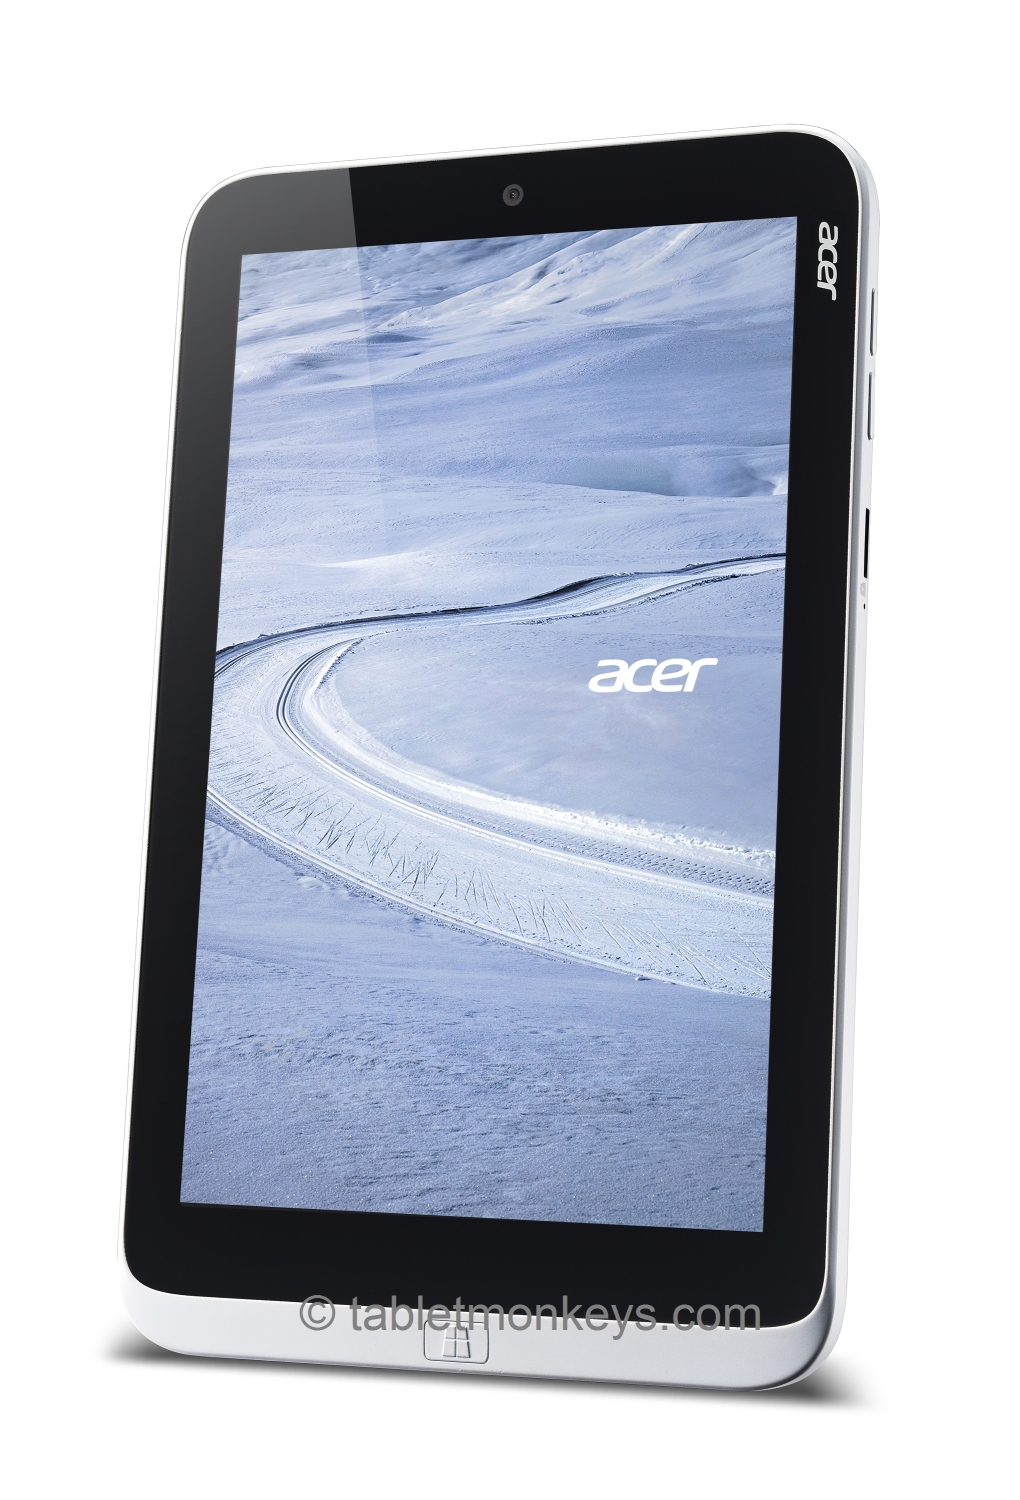 Acer Iconia W3 810 The First 8 Inch Small Windows 8 Tablet